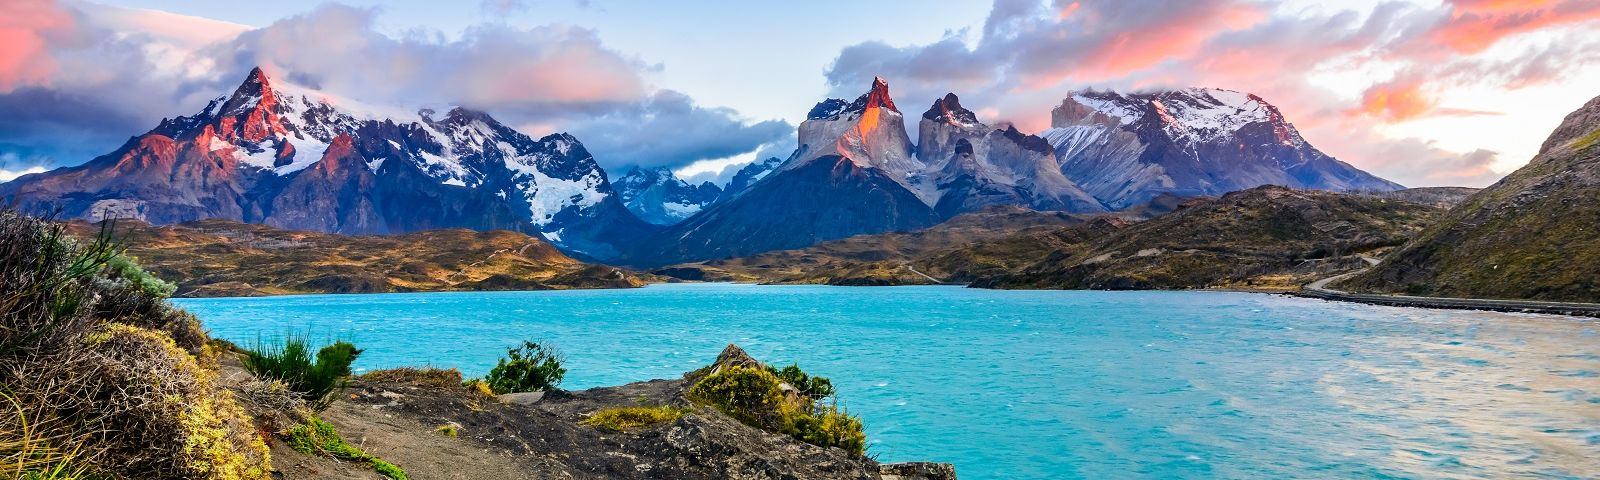 Best time to visit South America